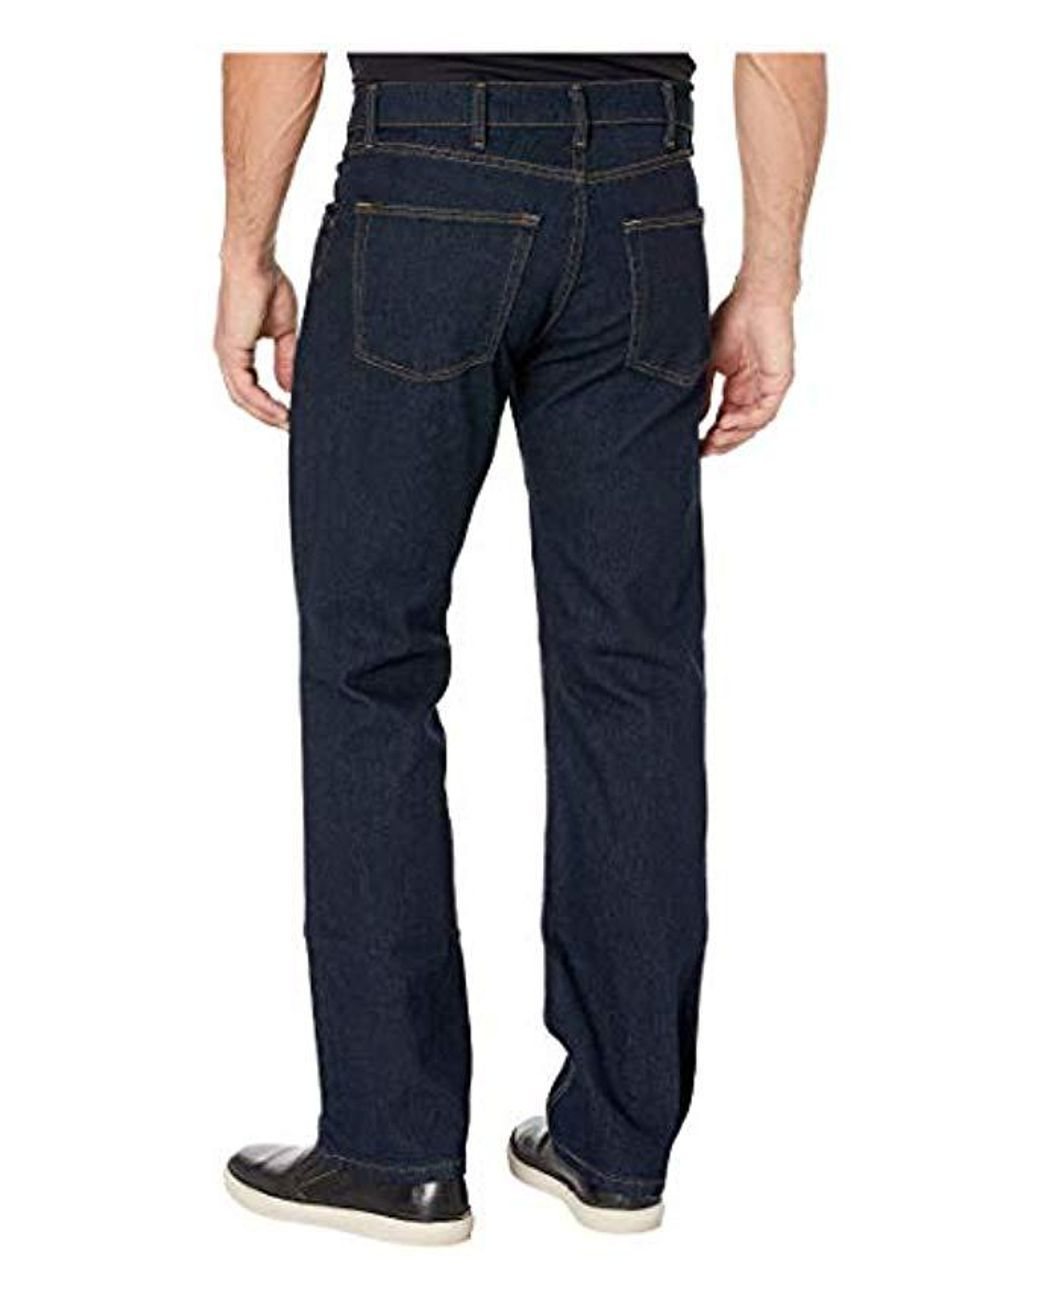 Men's Blue Grit n grind Flex Denim Work Pant (straight Fit)